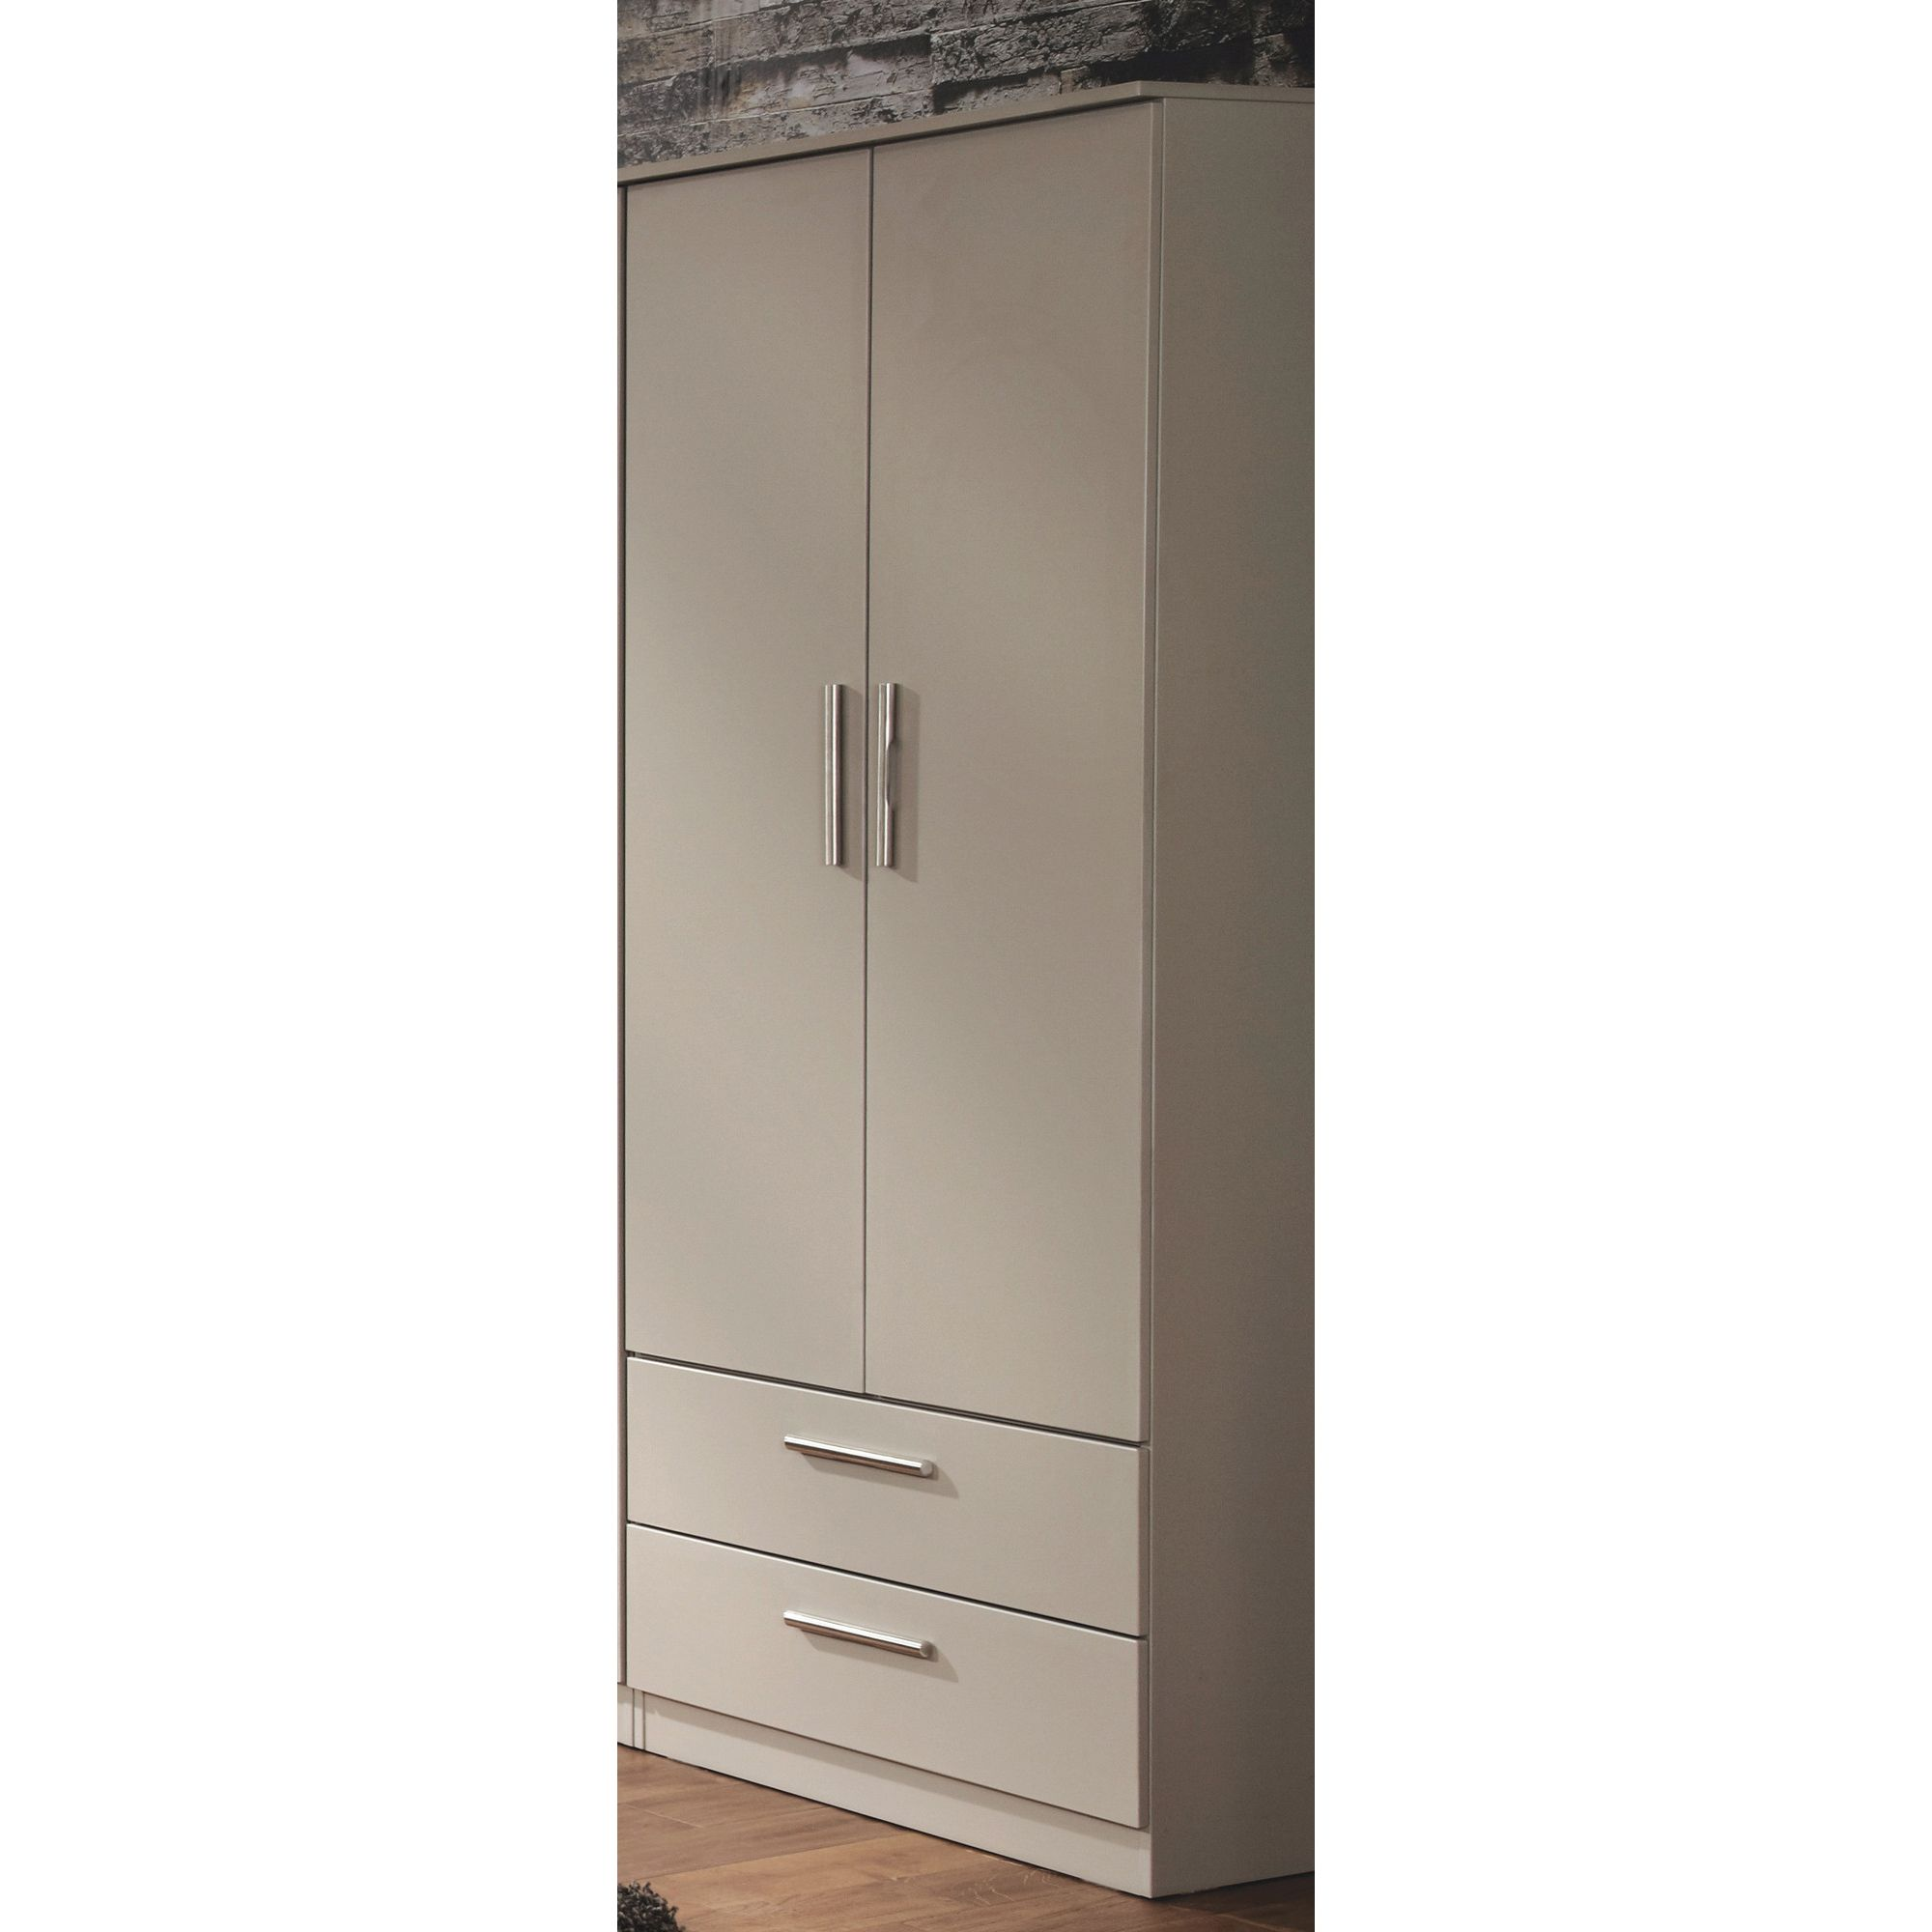 Welcome Furniture Contrast Tall 2 Drawer Wardrobe - Vanilla at Tesco Direct